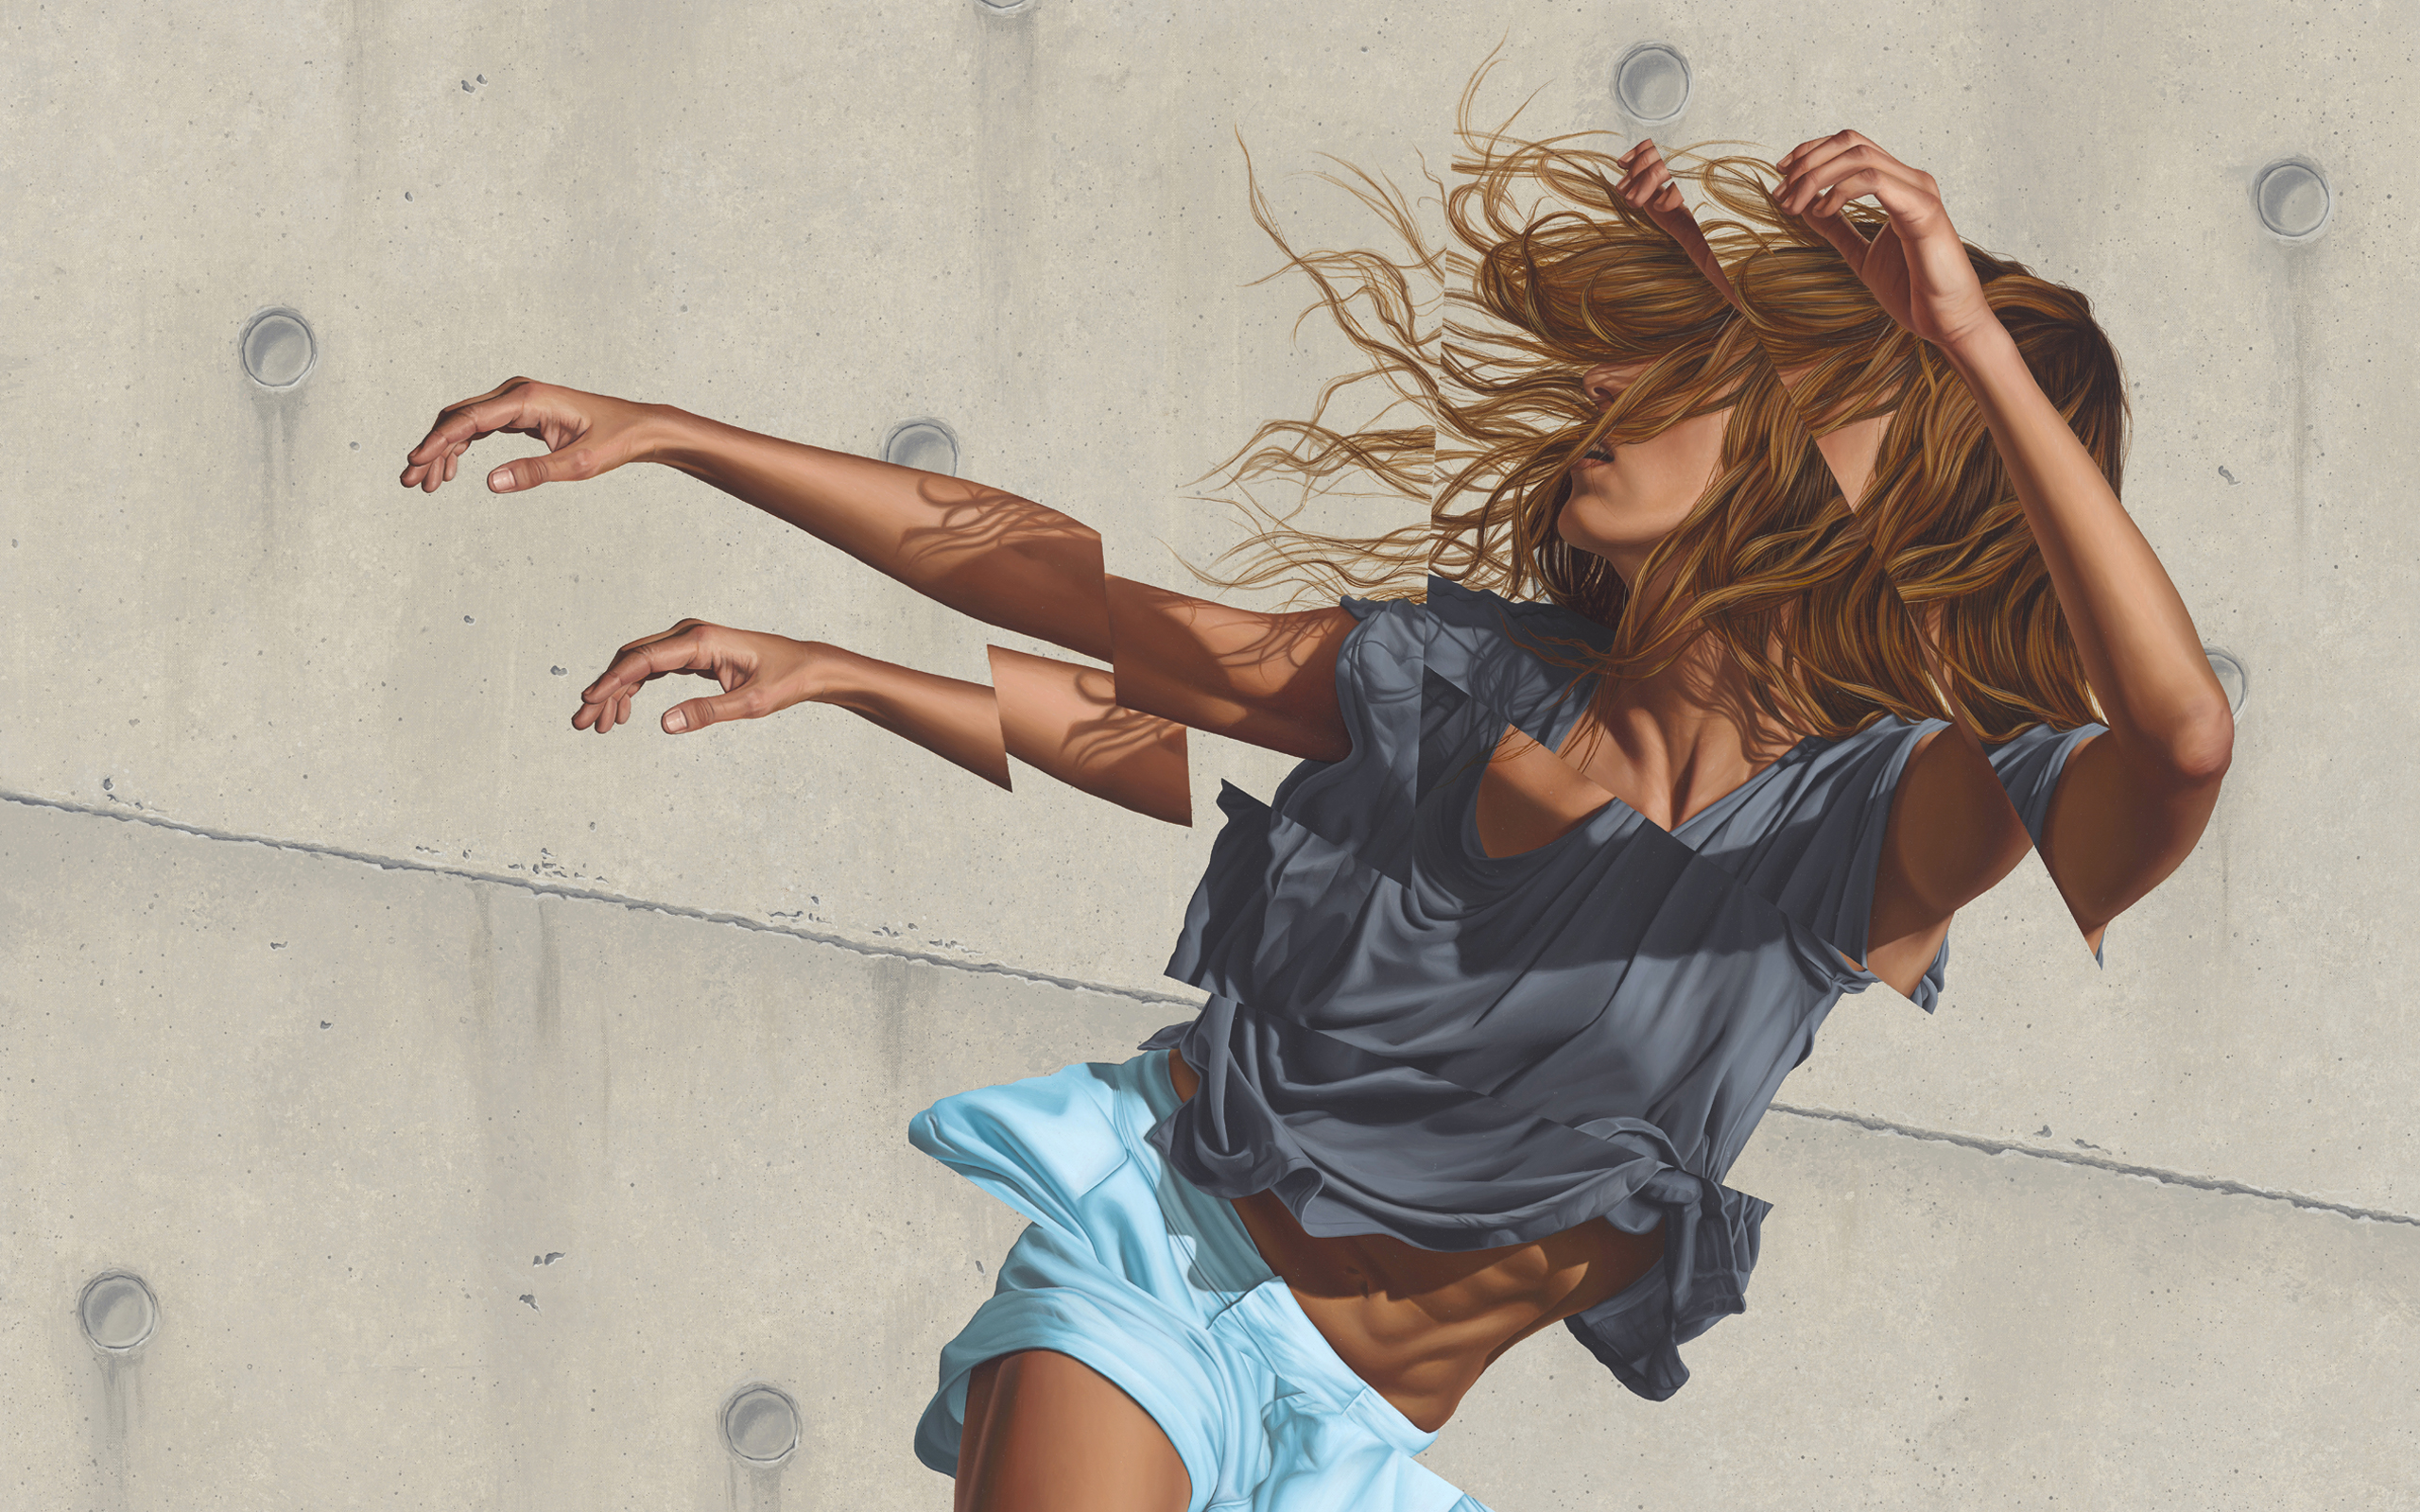 james bullough murales mis gafas de pasta03